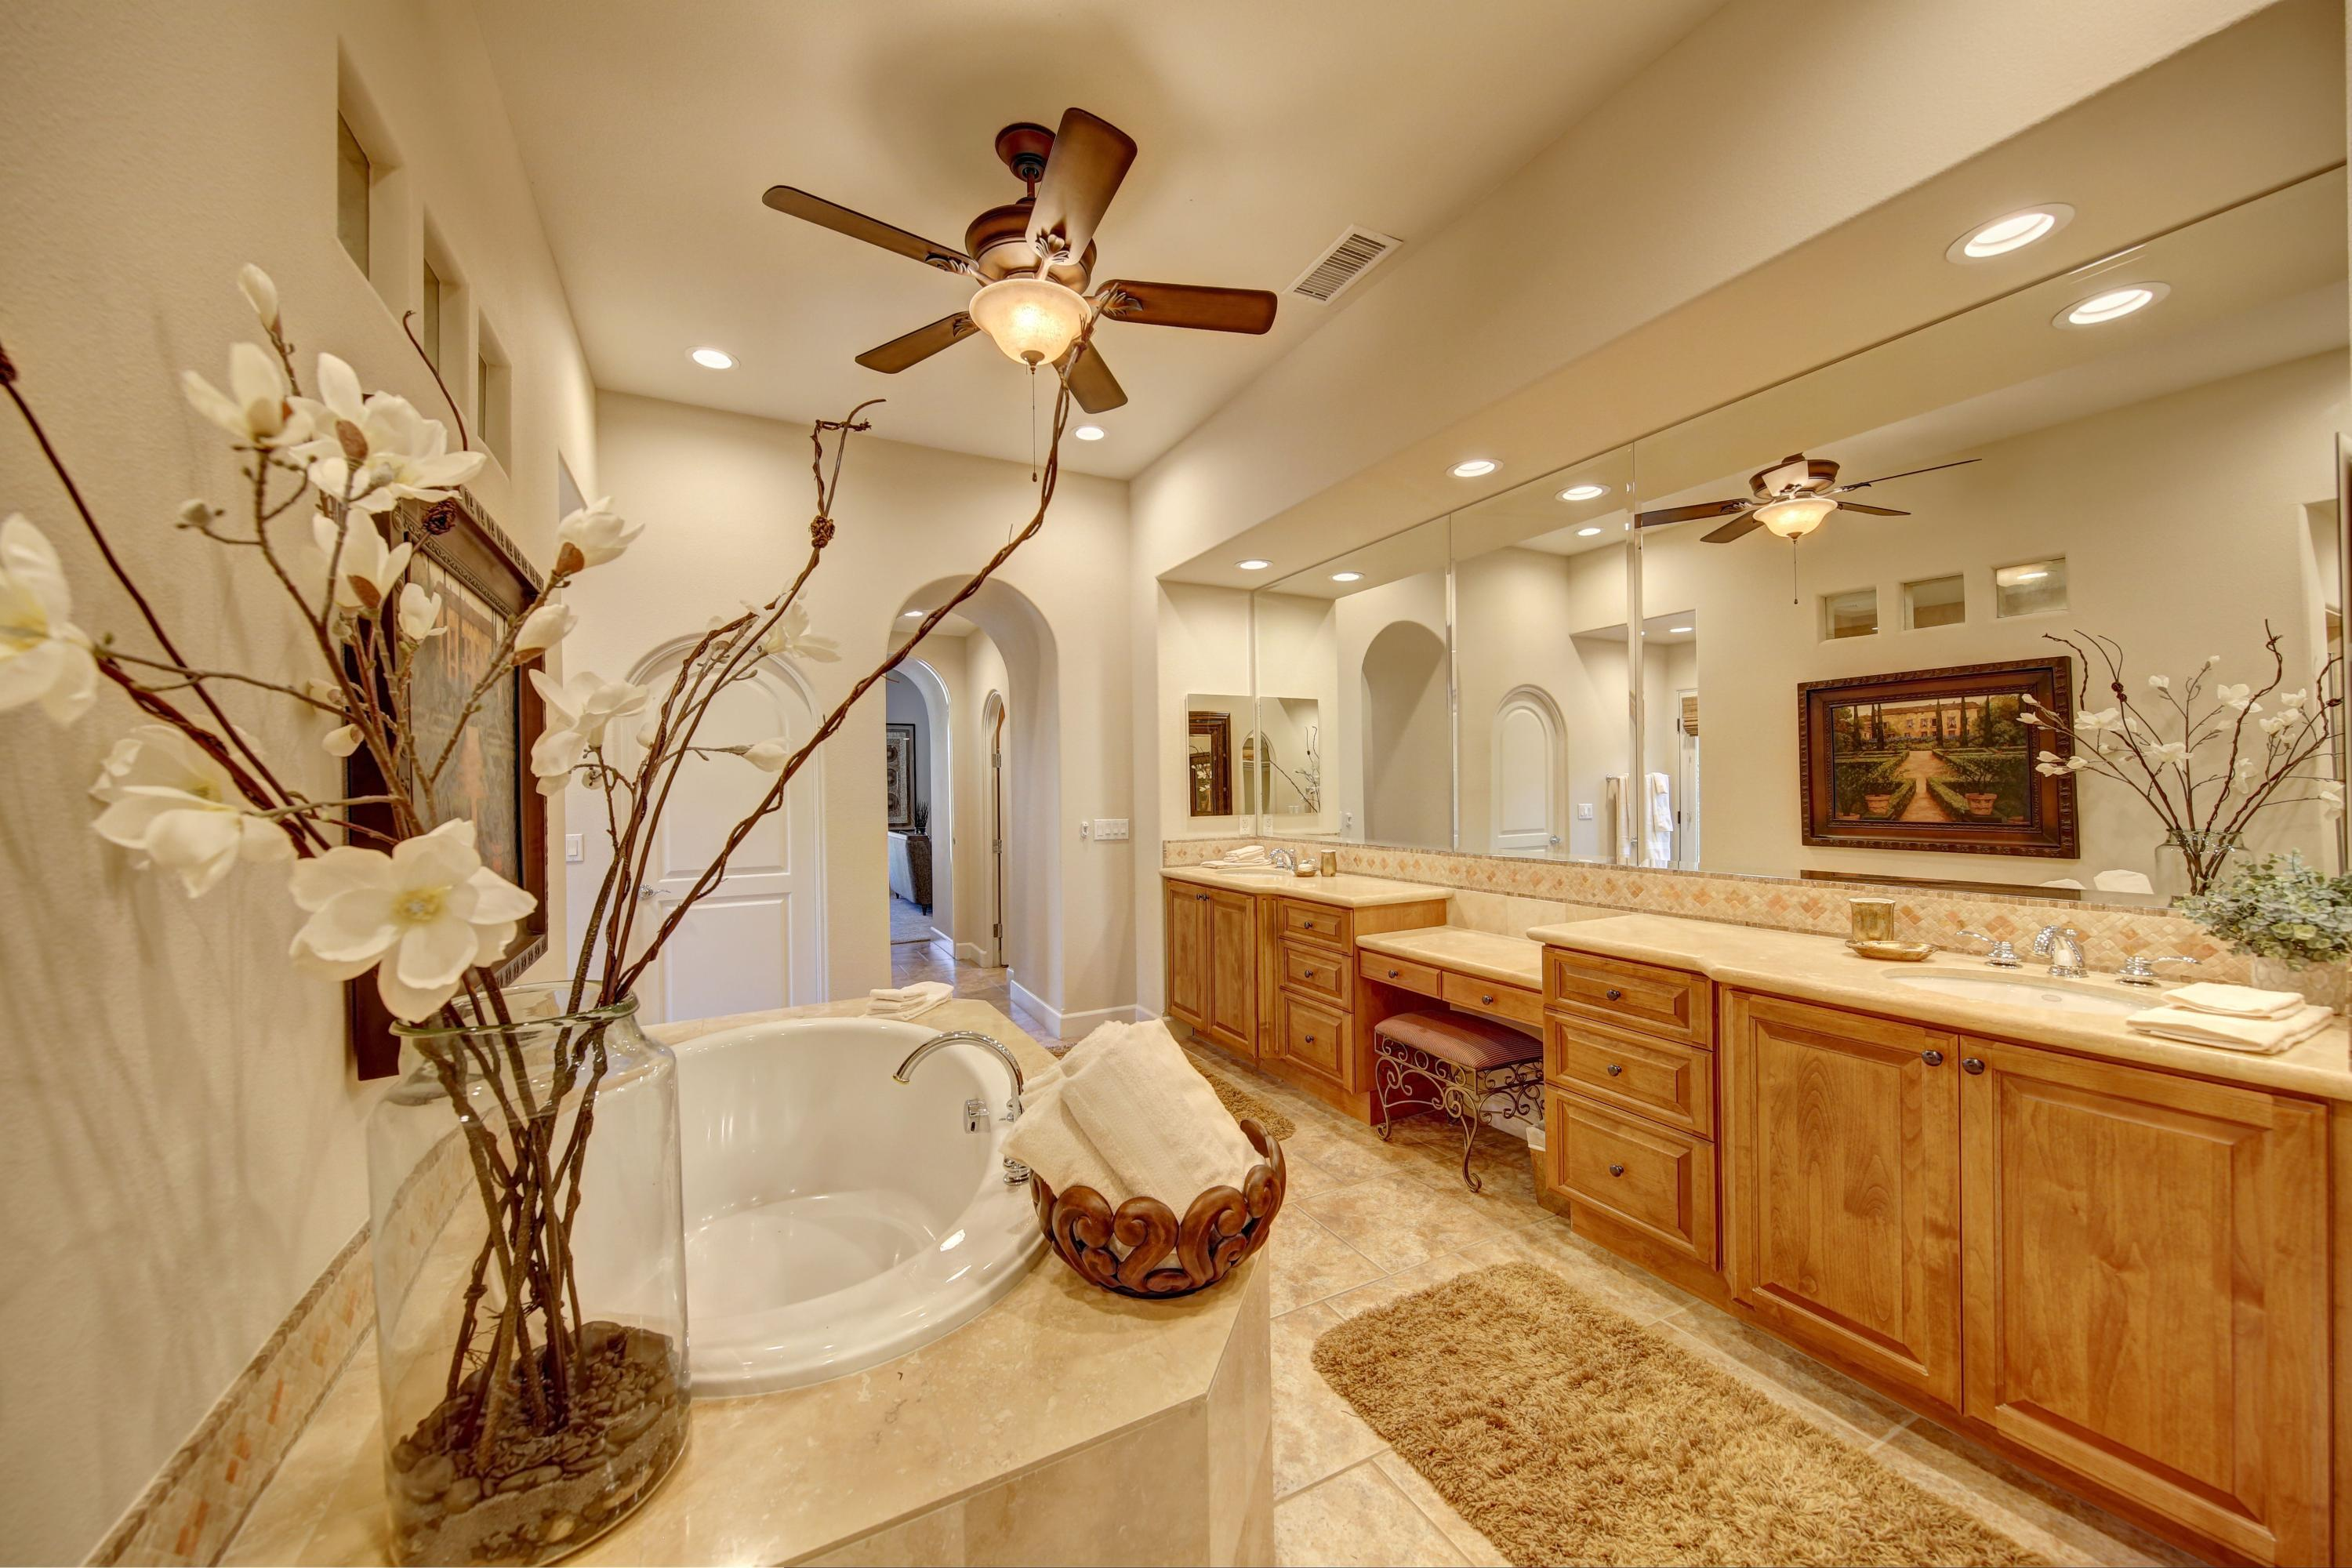 81160 National Drive, La Quinta, California 92253, 5 Bedrooms Bedrooms, ,6 BathroomsBathrooms,Residential,For Sale,81160 National Drive,219037664